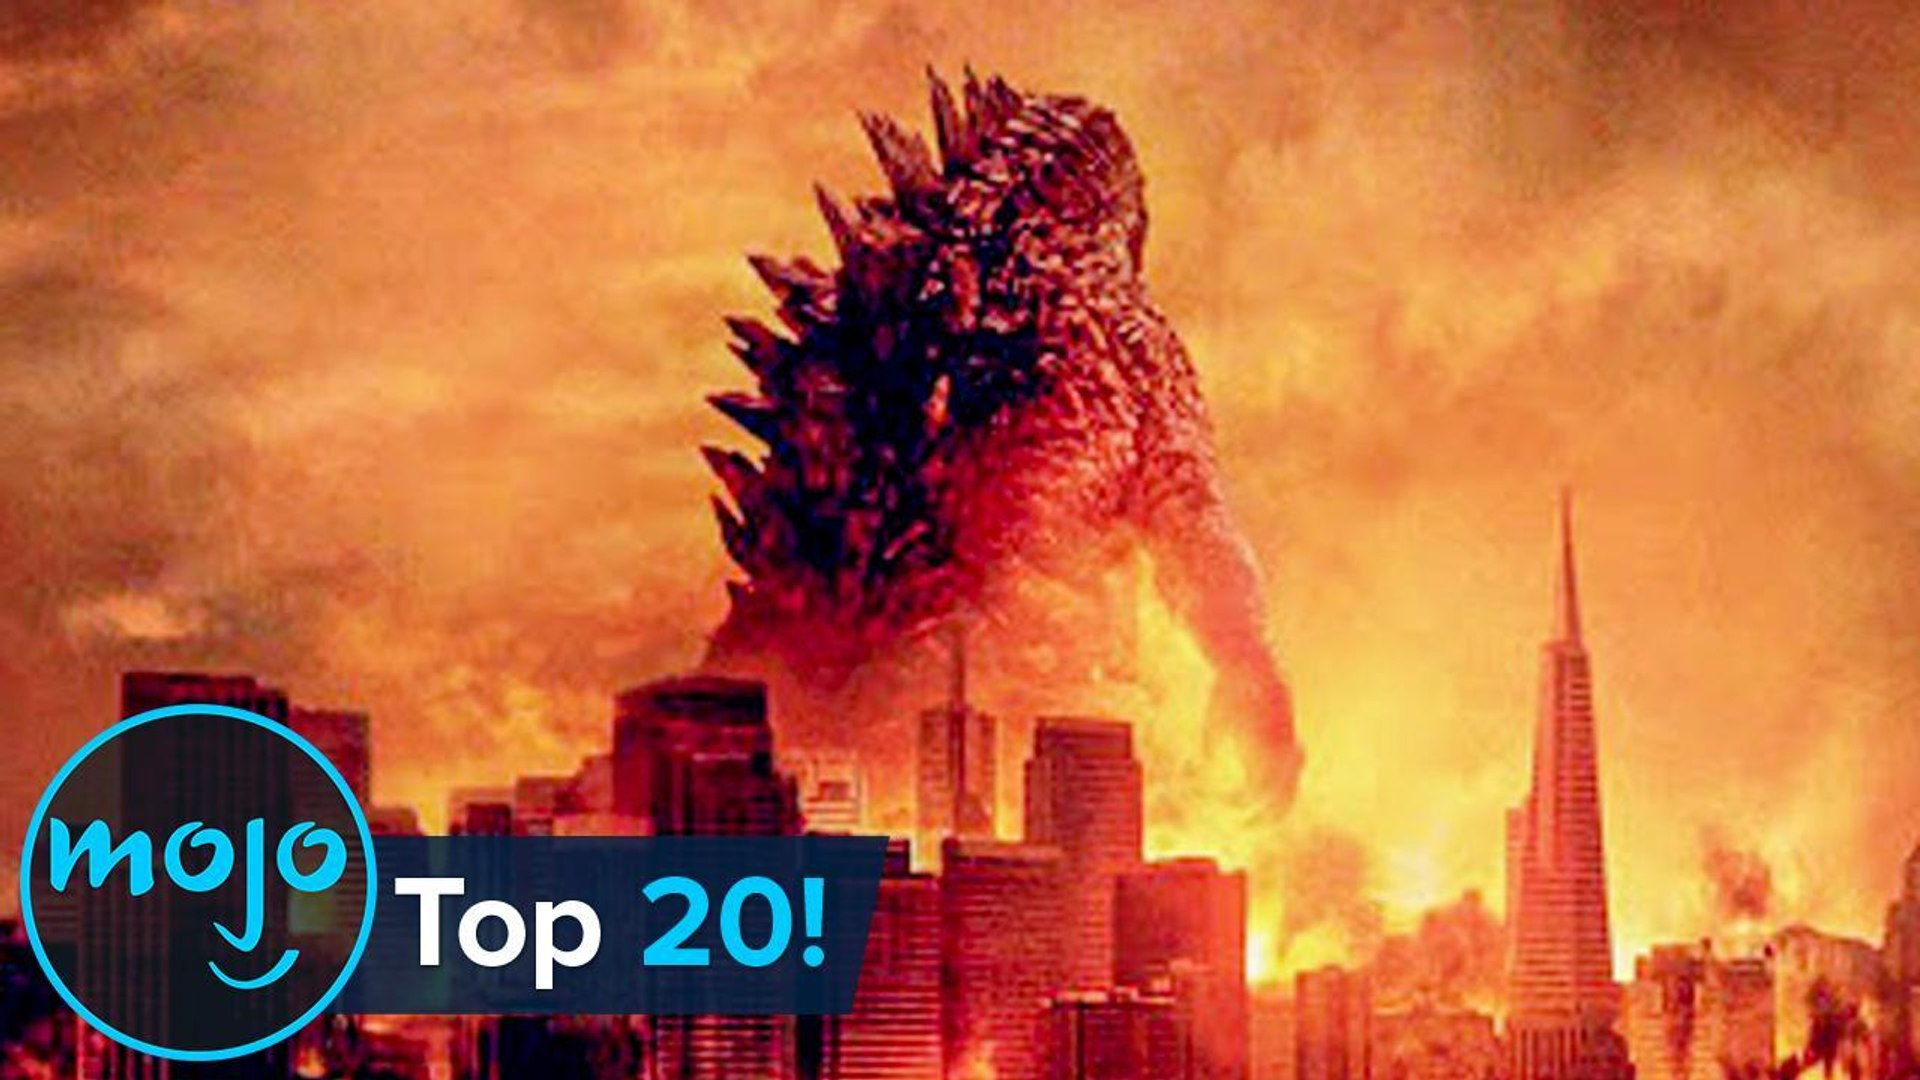 Top 20 Best Monster Movies of the Century (So Far)